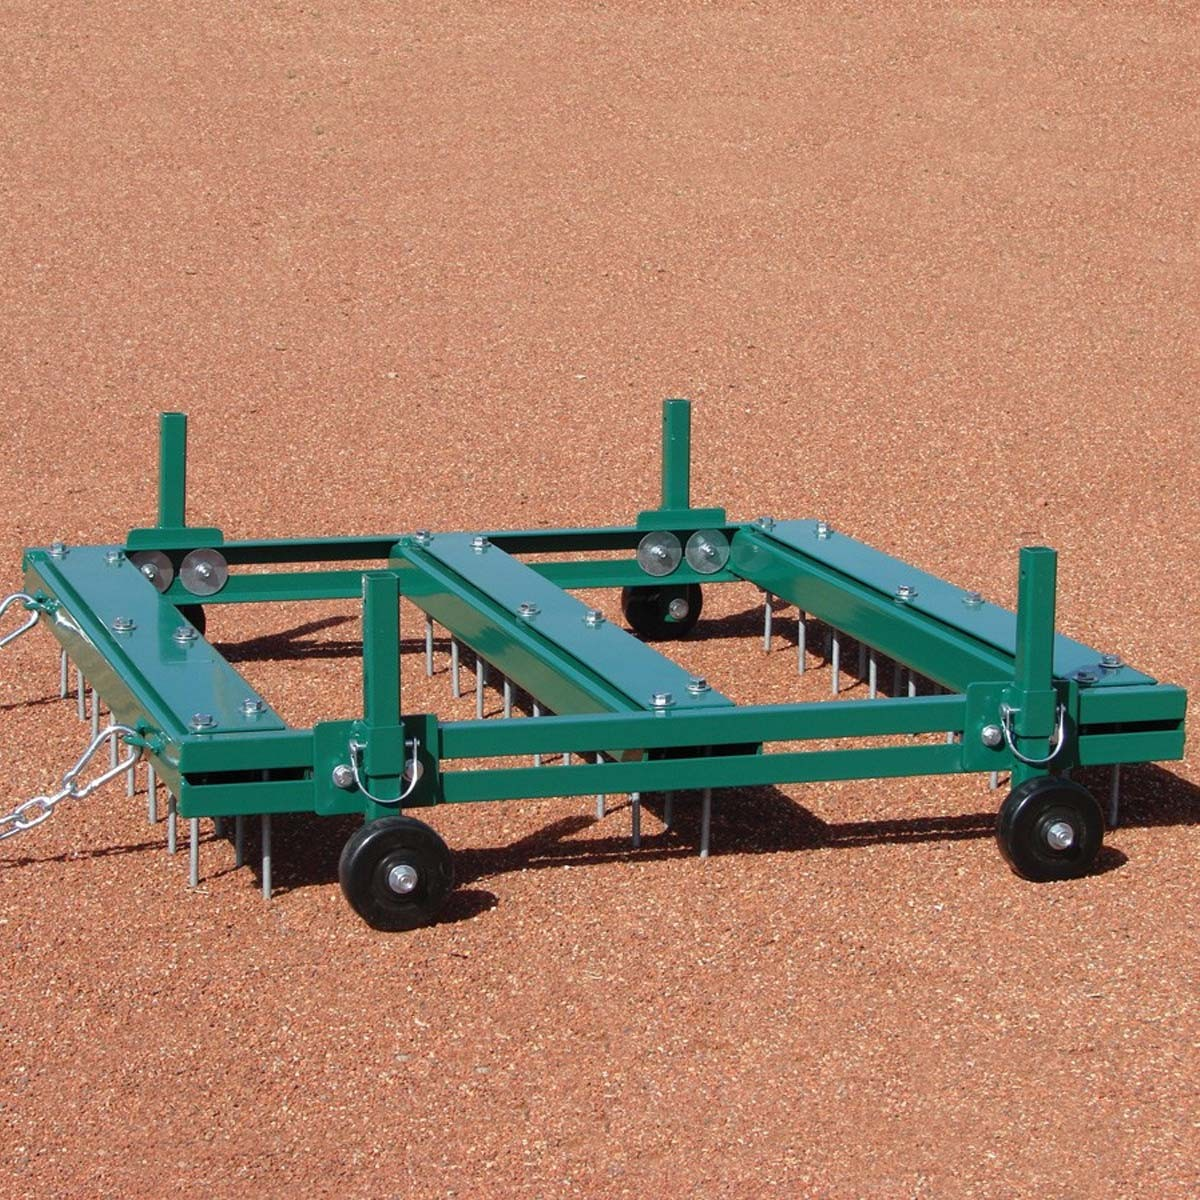 Shown With Optional Big League Infield Nail Drag, 3'W x 3'L (A15-216)